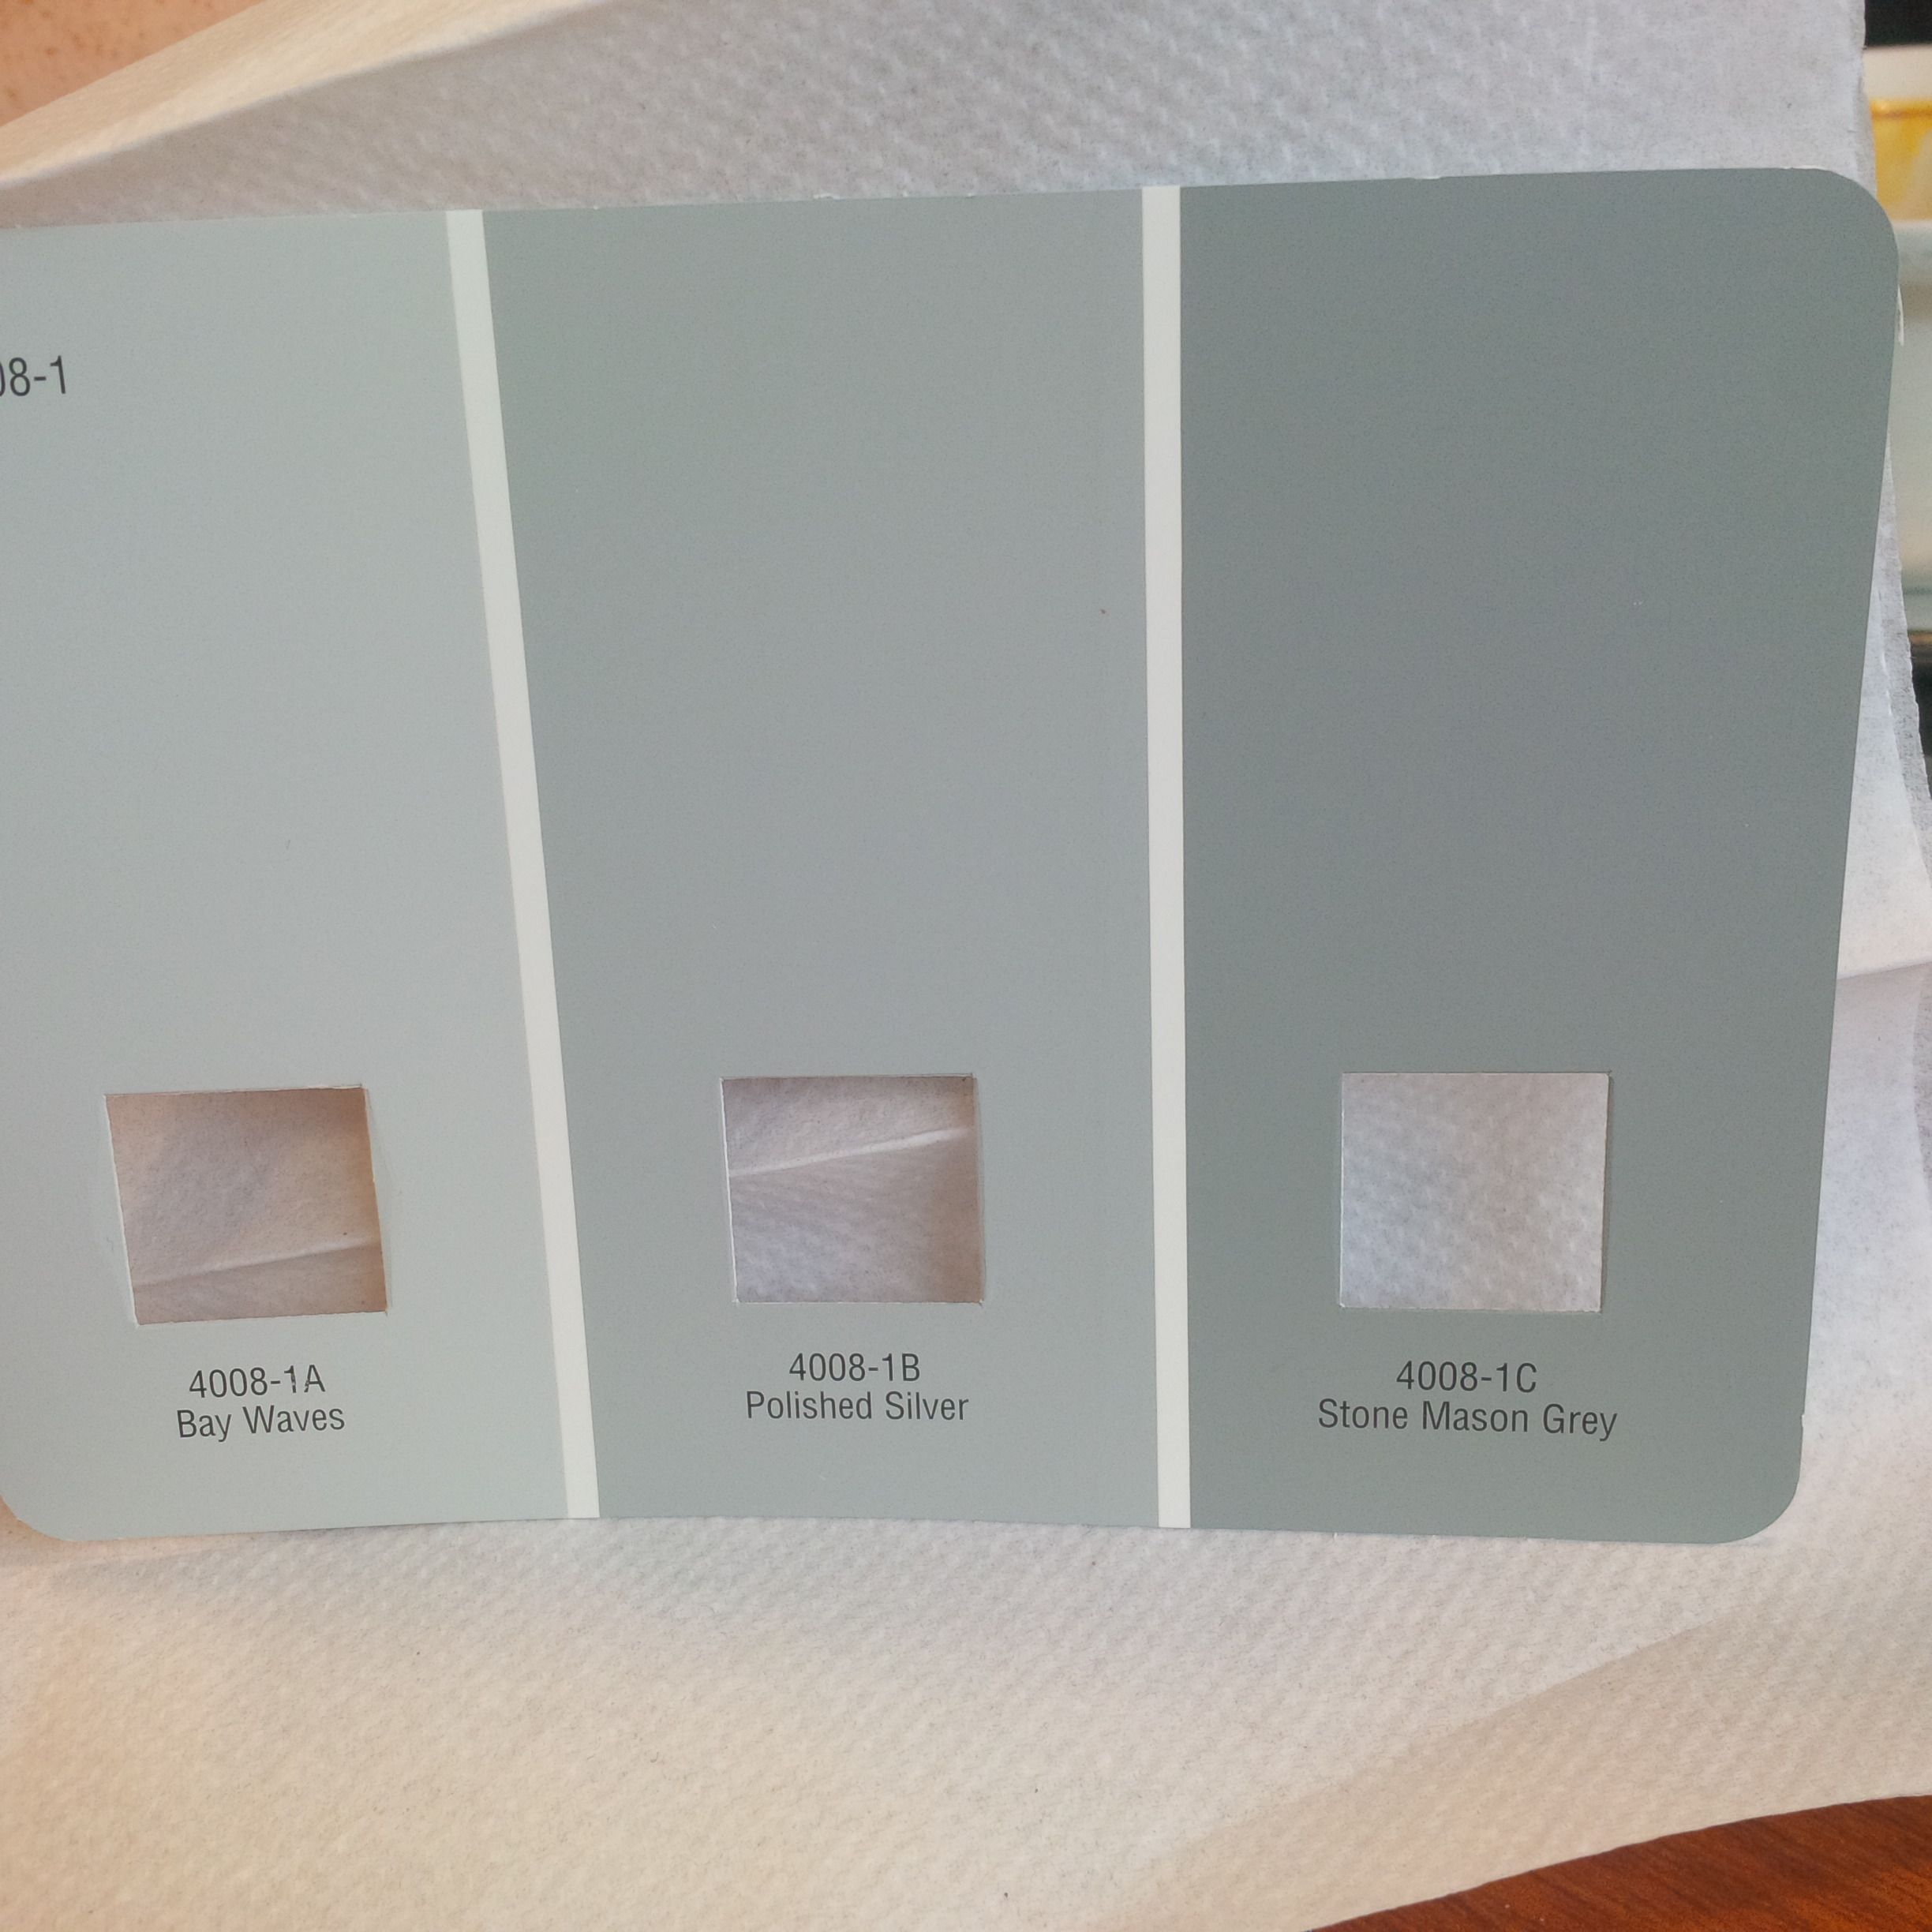 Recommended 10 Valspar Bathroom Colors Some Of The Cleverest And Inspiring For Yo In 2020 Valspar Paint Colors Bathroom Valspar Paint Colors Gray Valspar Paint Colors